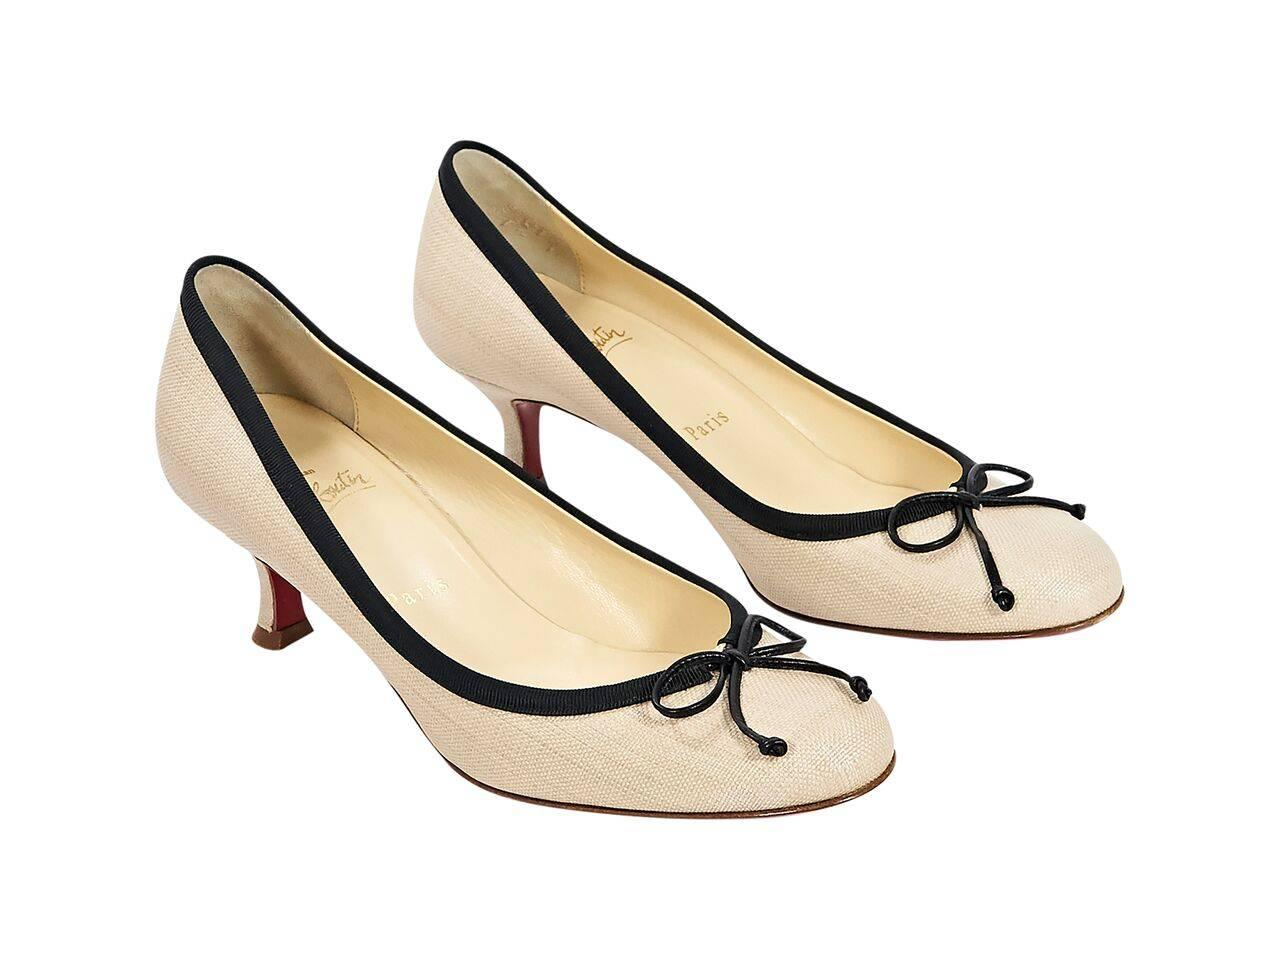 88f4c4b1dd2 ... new zealand product details tan canvas kitten heel pumps by christian  louboutin. black grosgrain topline